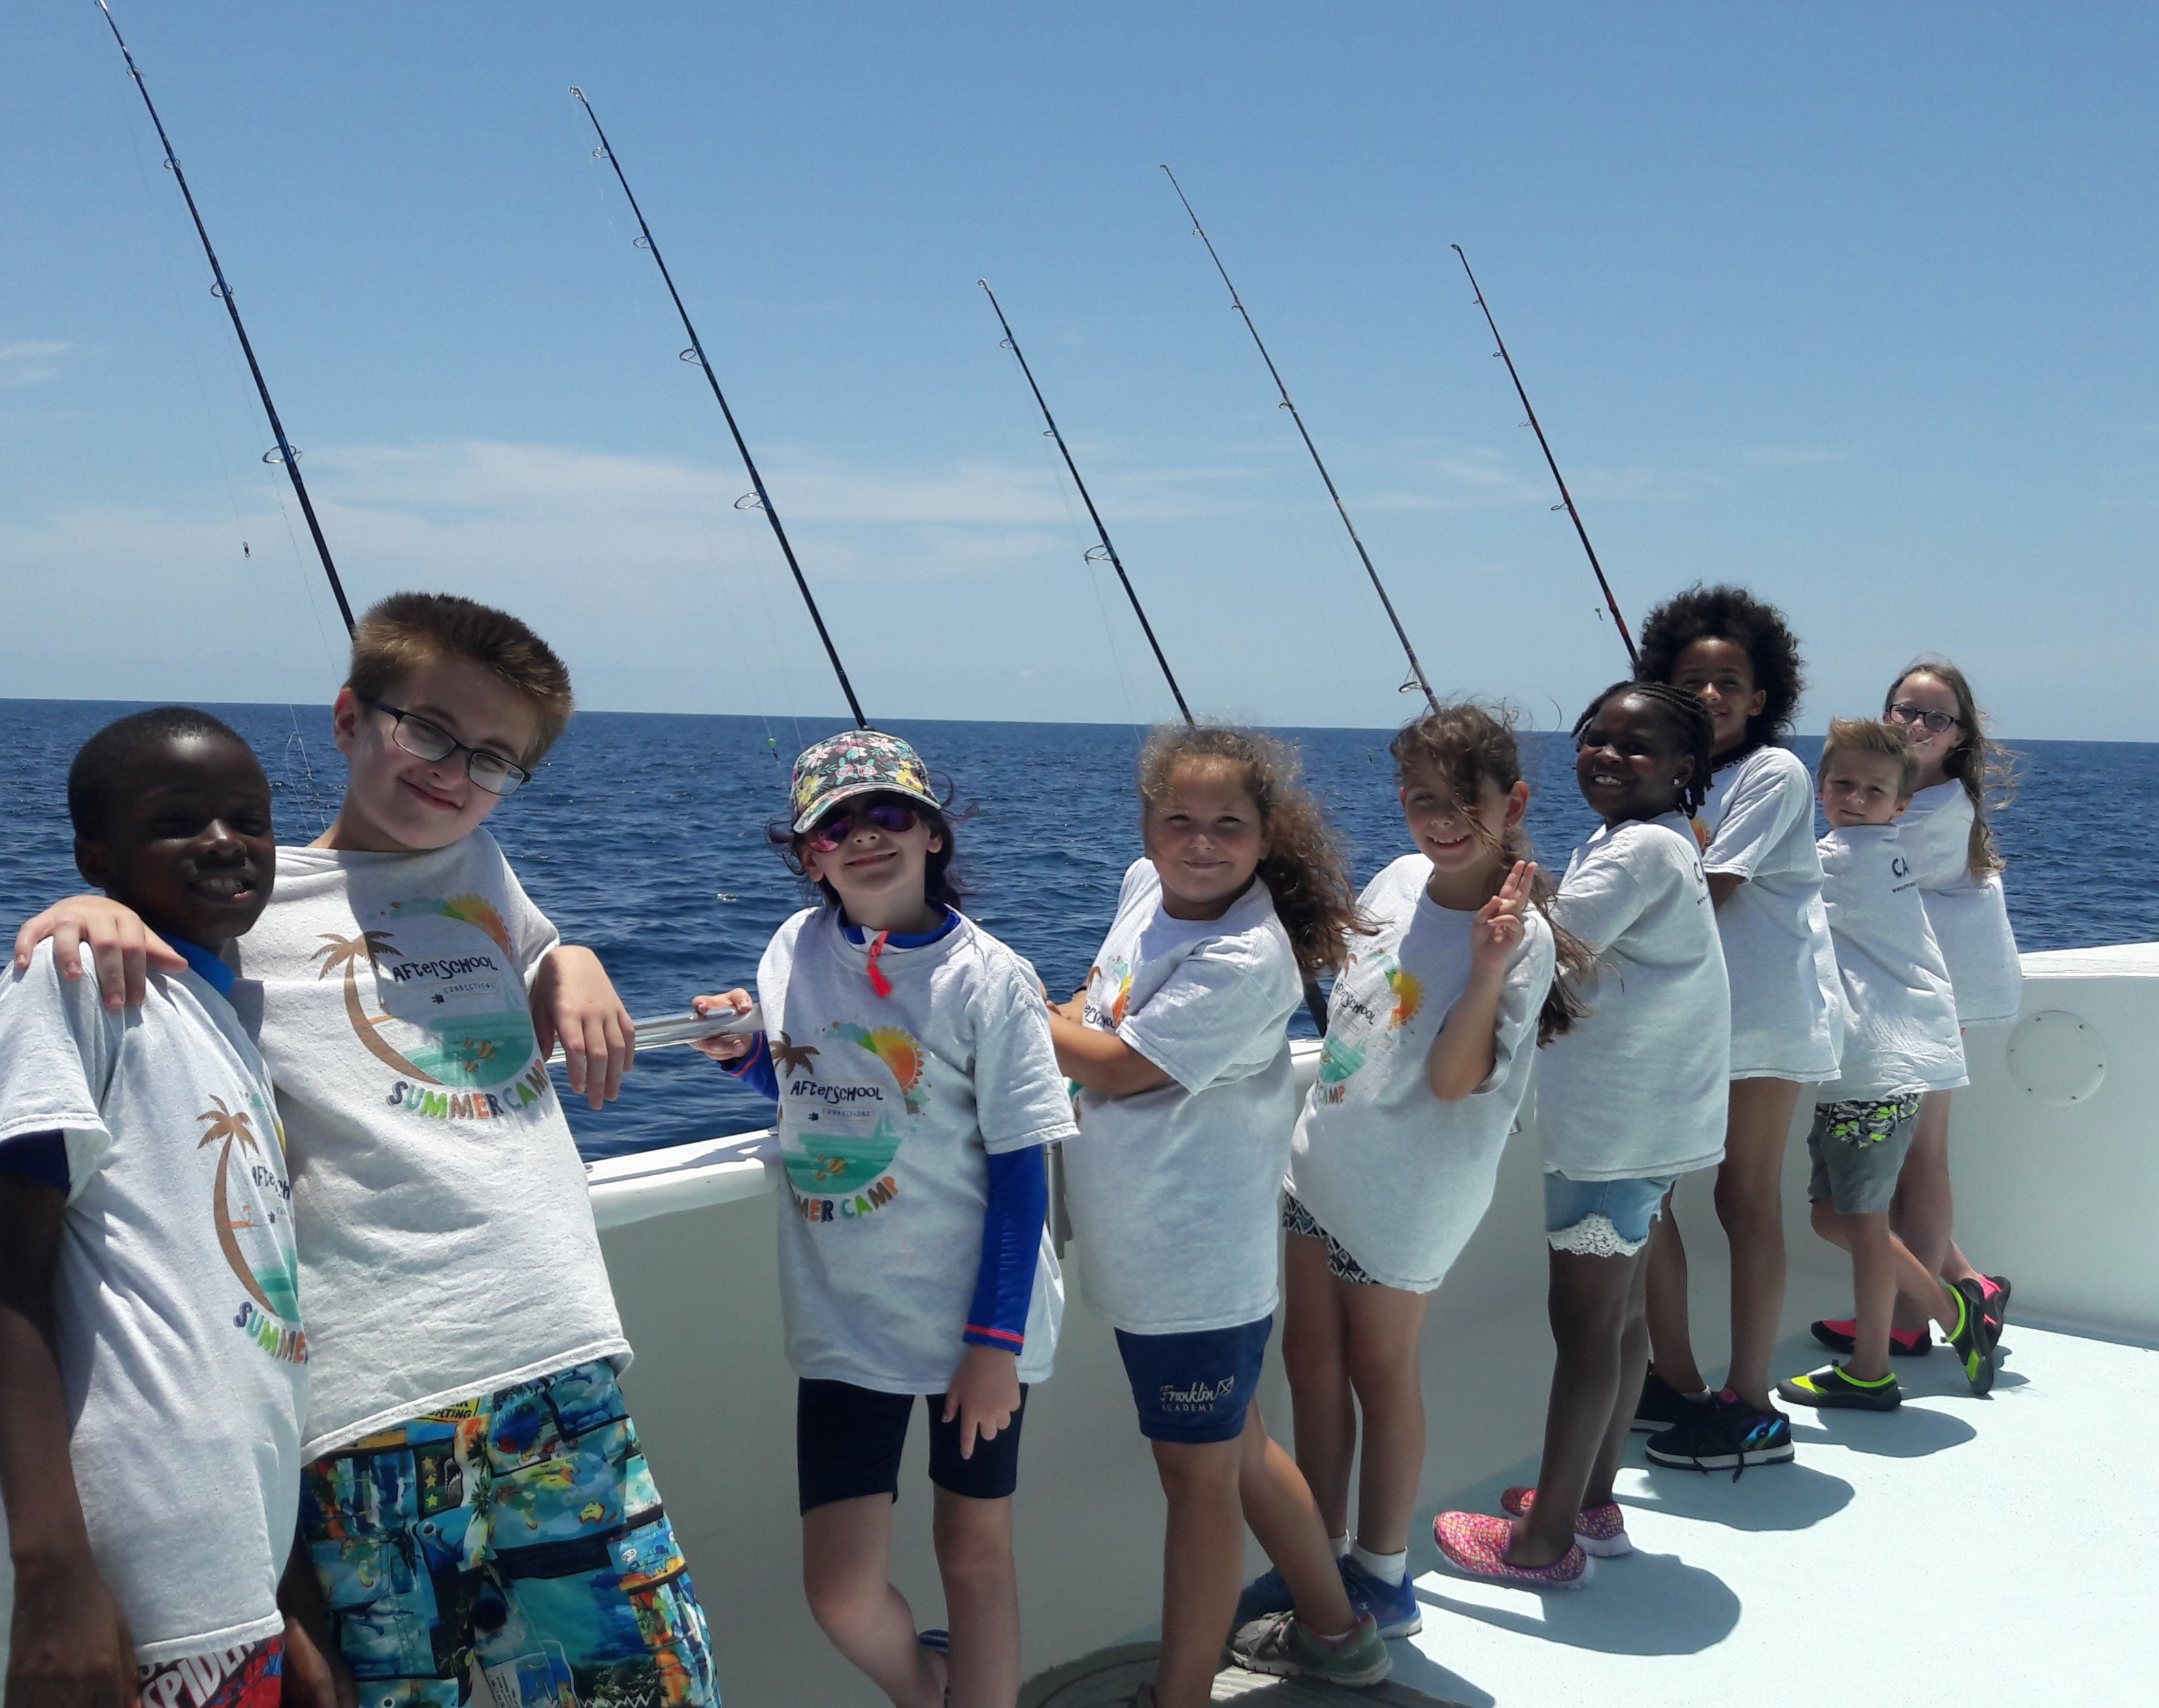 Florida Fishing Academy Boat Trip Image number 5